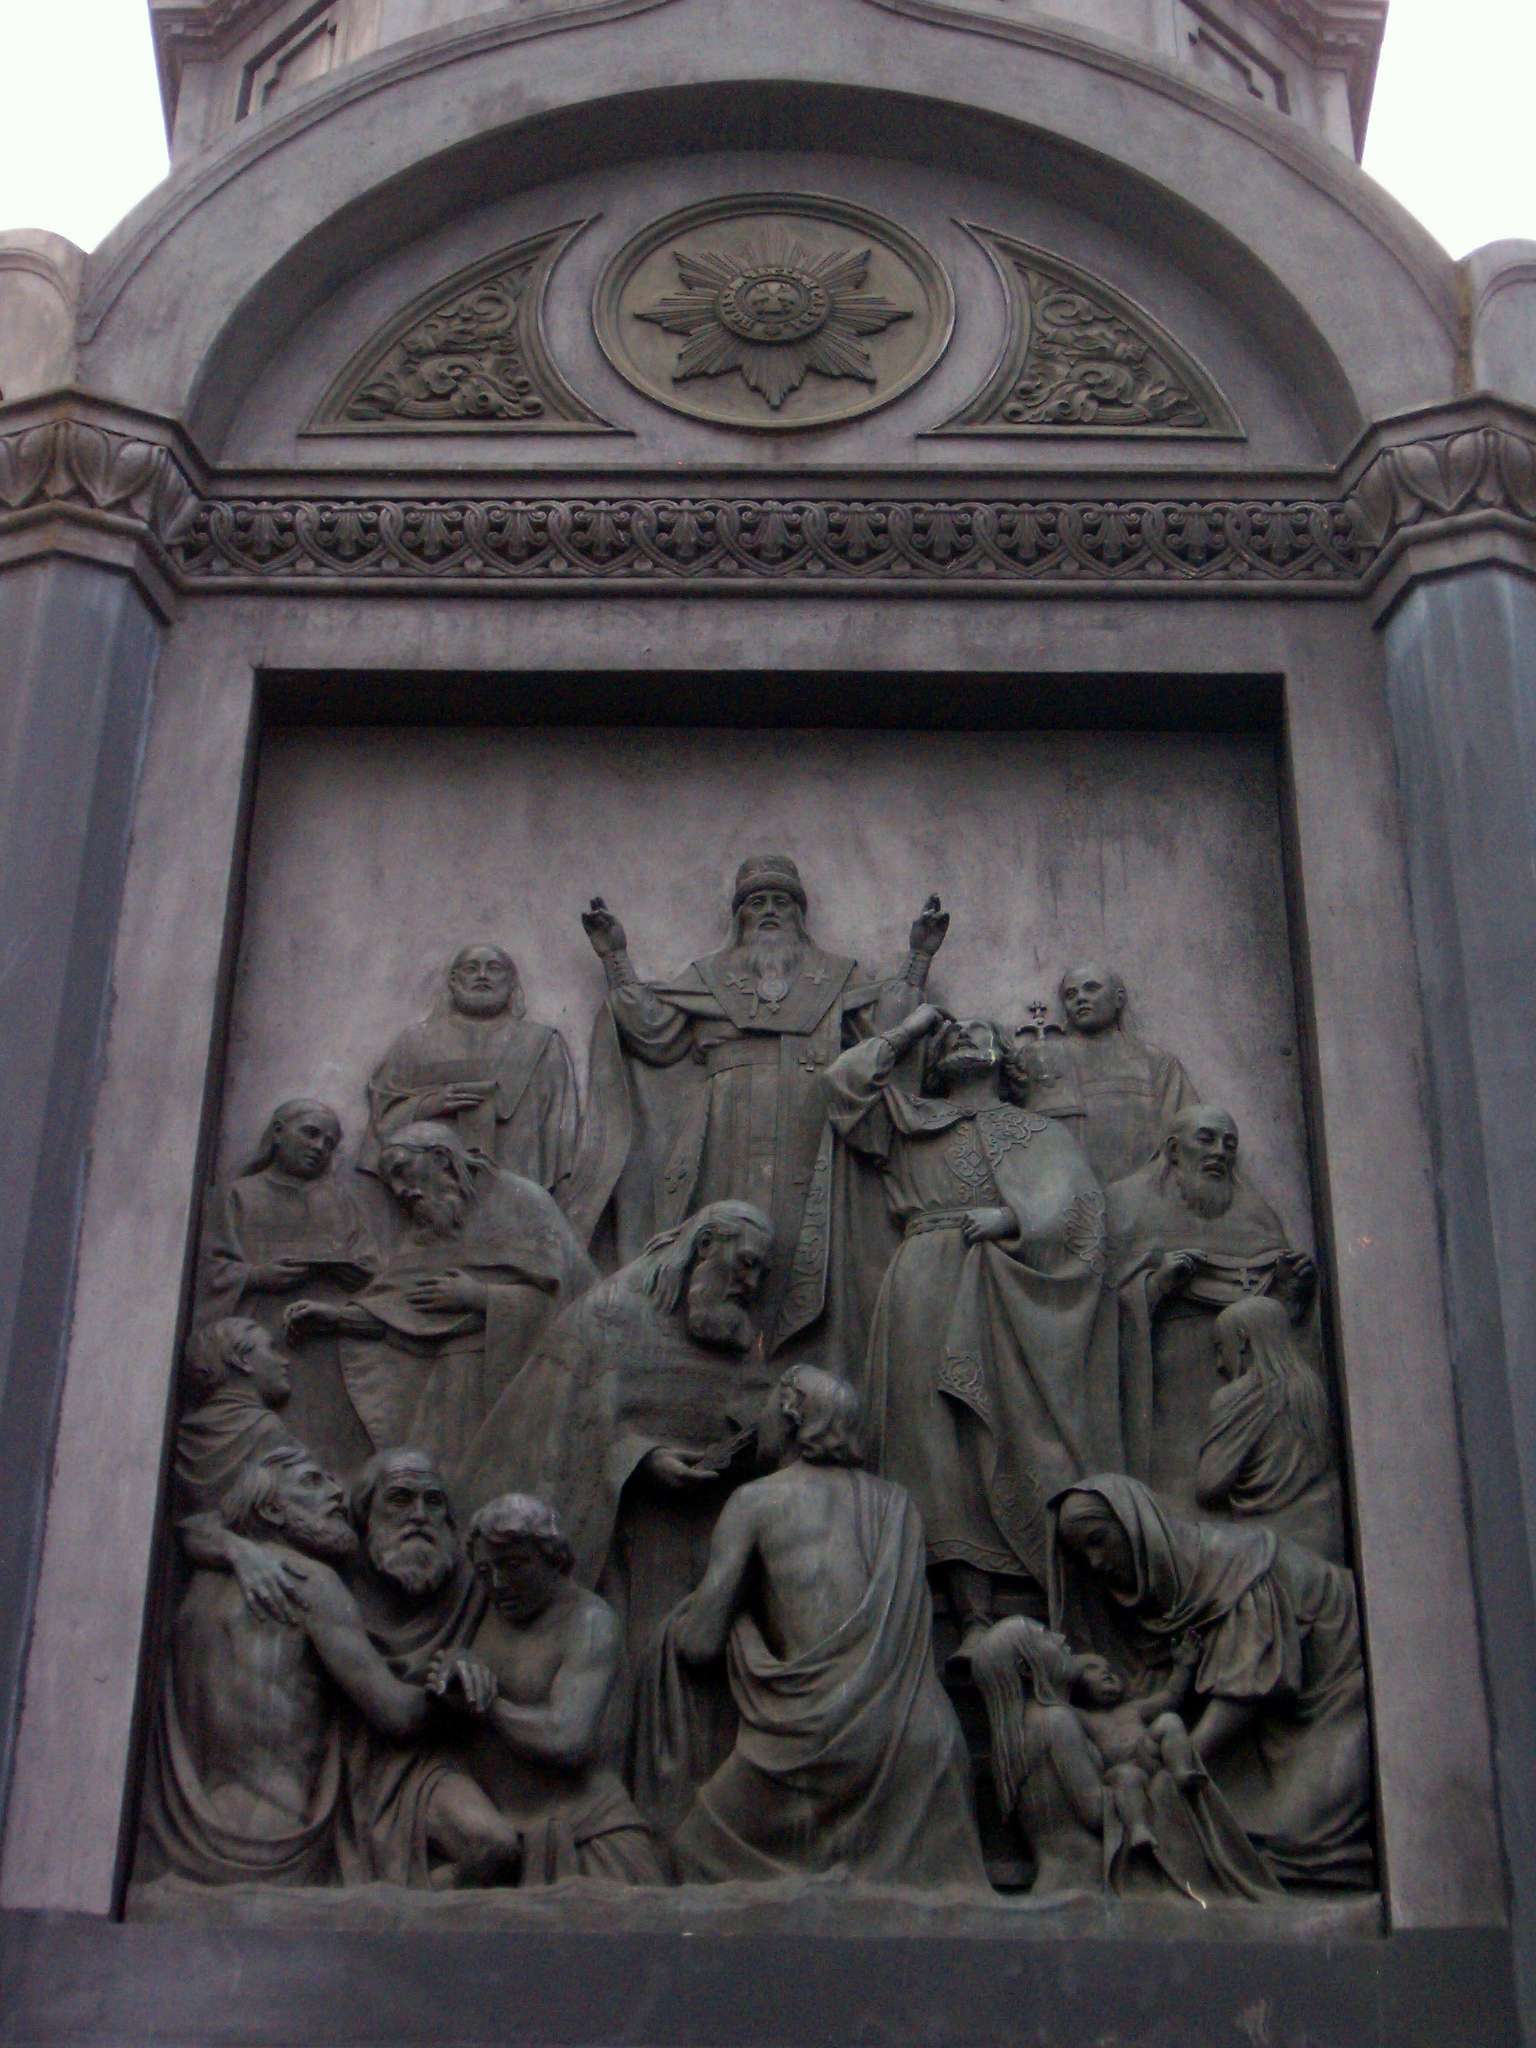 https://upload.wikimedia.org/wikipedia/commons/6/63/Monument_to_Volodymyr_the_Great_in_Kyiv%2C_detail_1.JPG